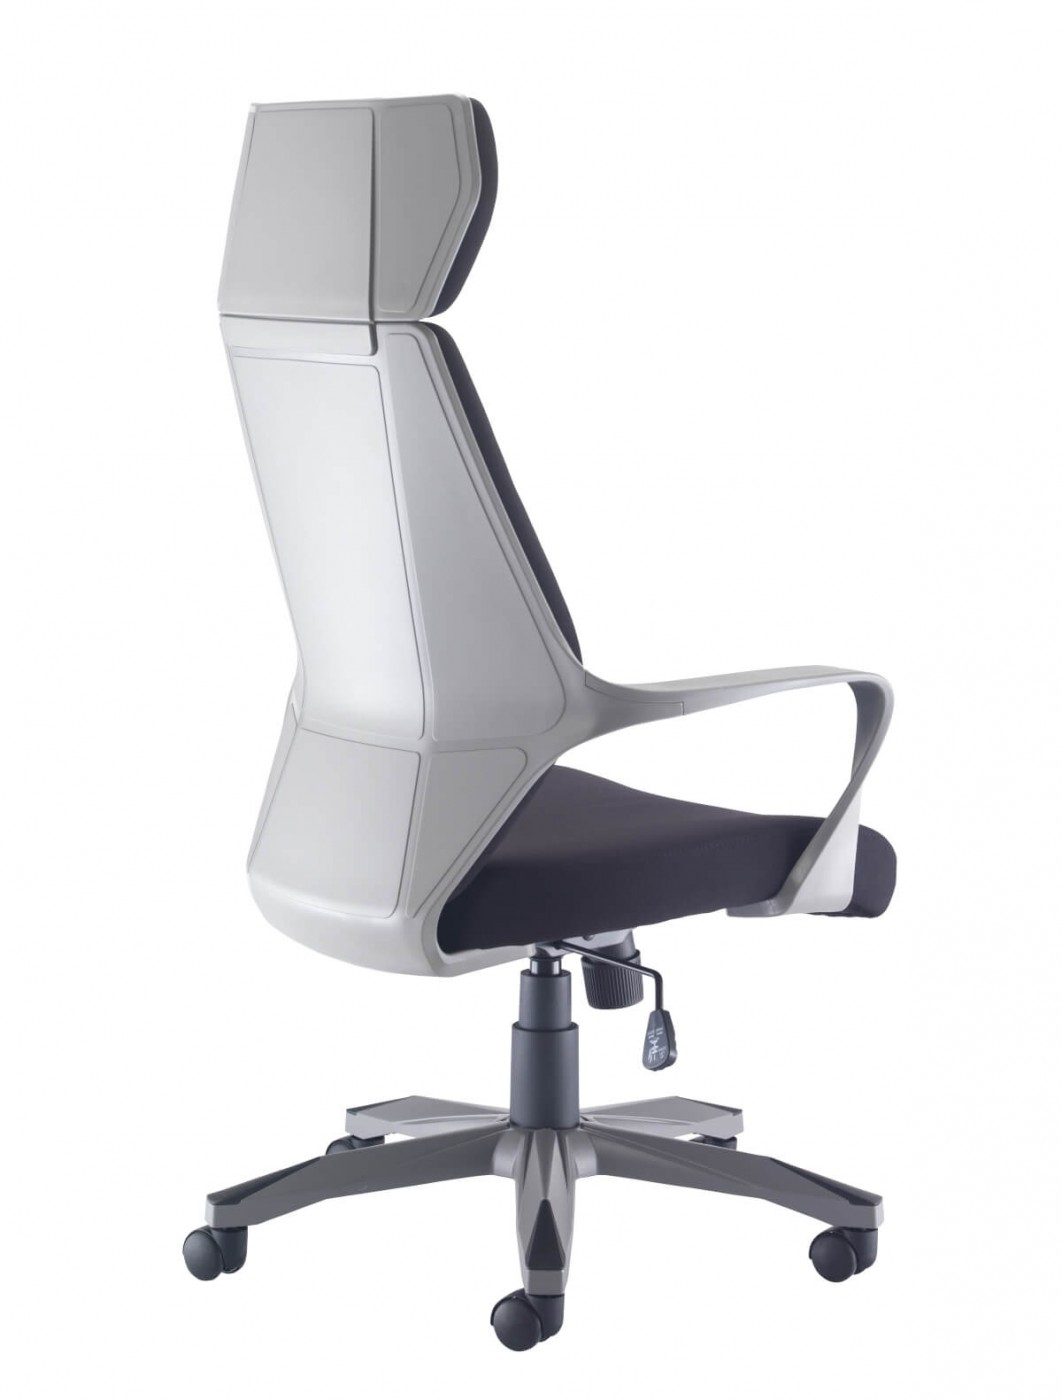 desk chair fabric elegant solutions office chairs rocky ch1783grbk 121